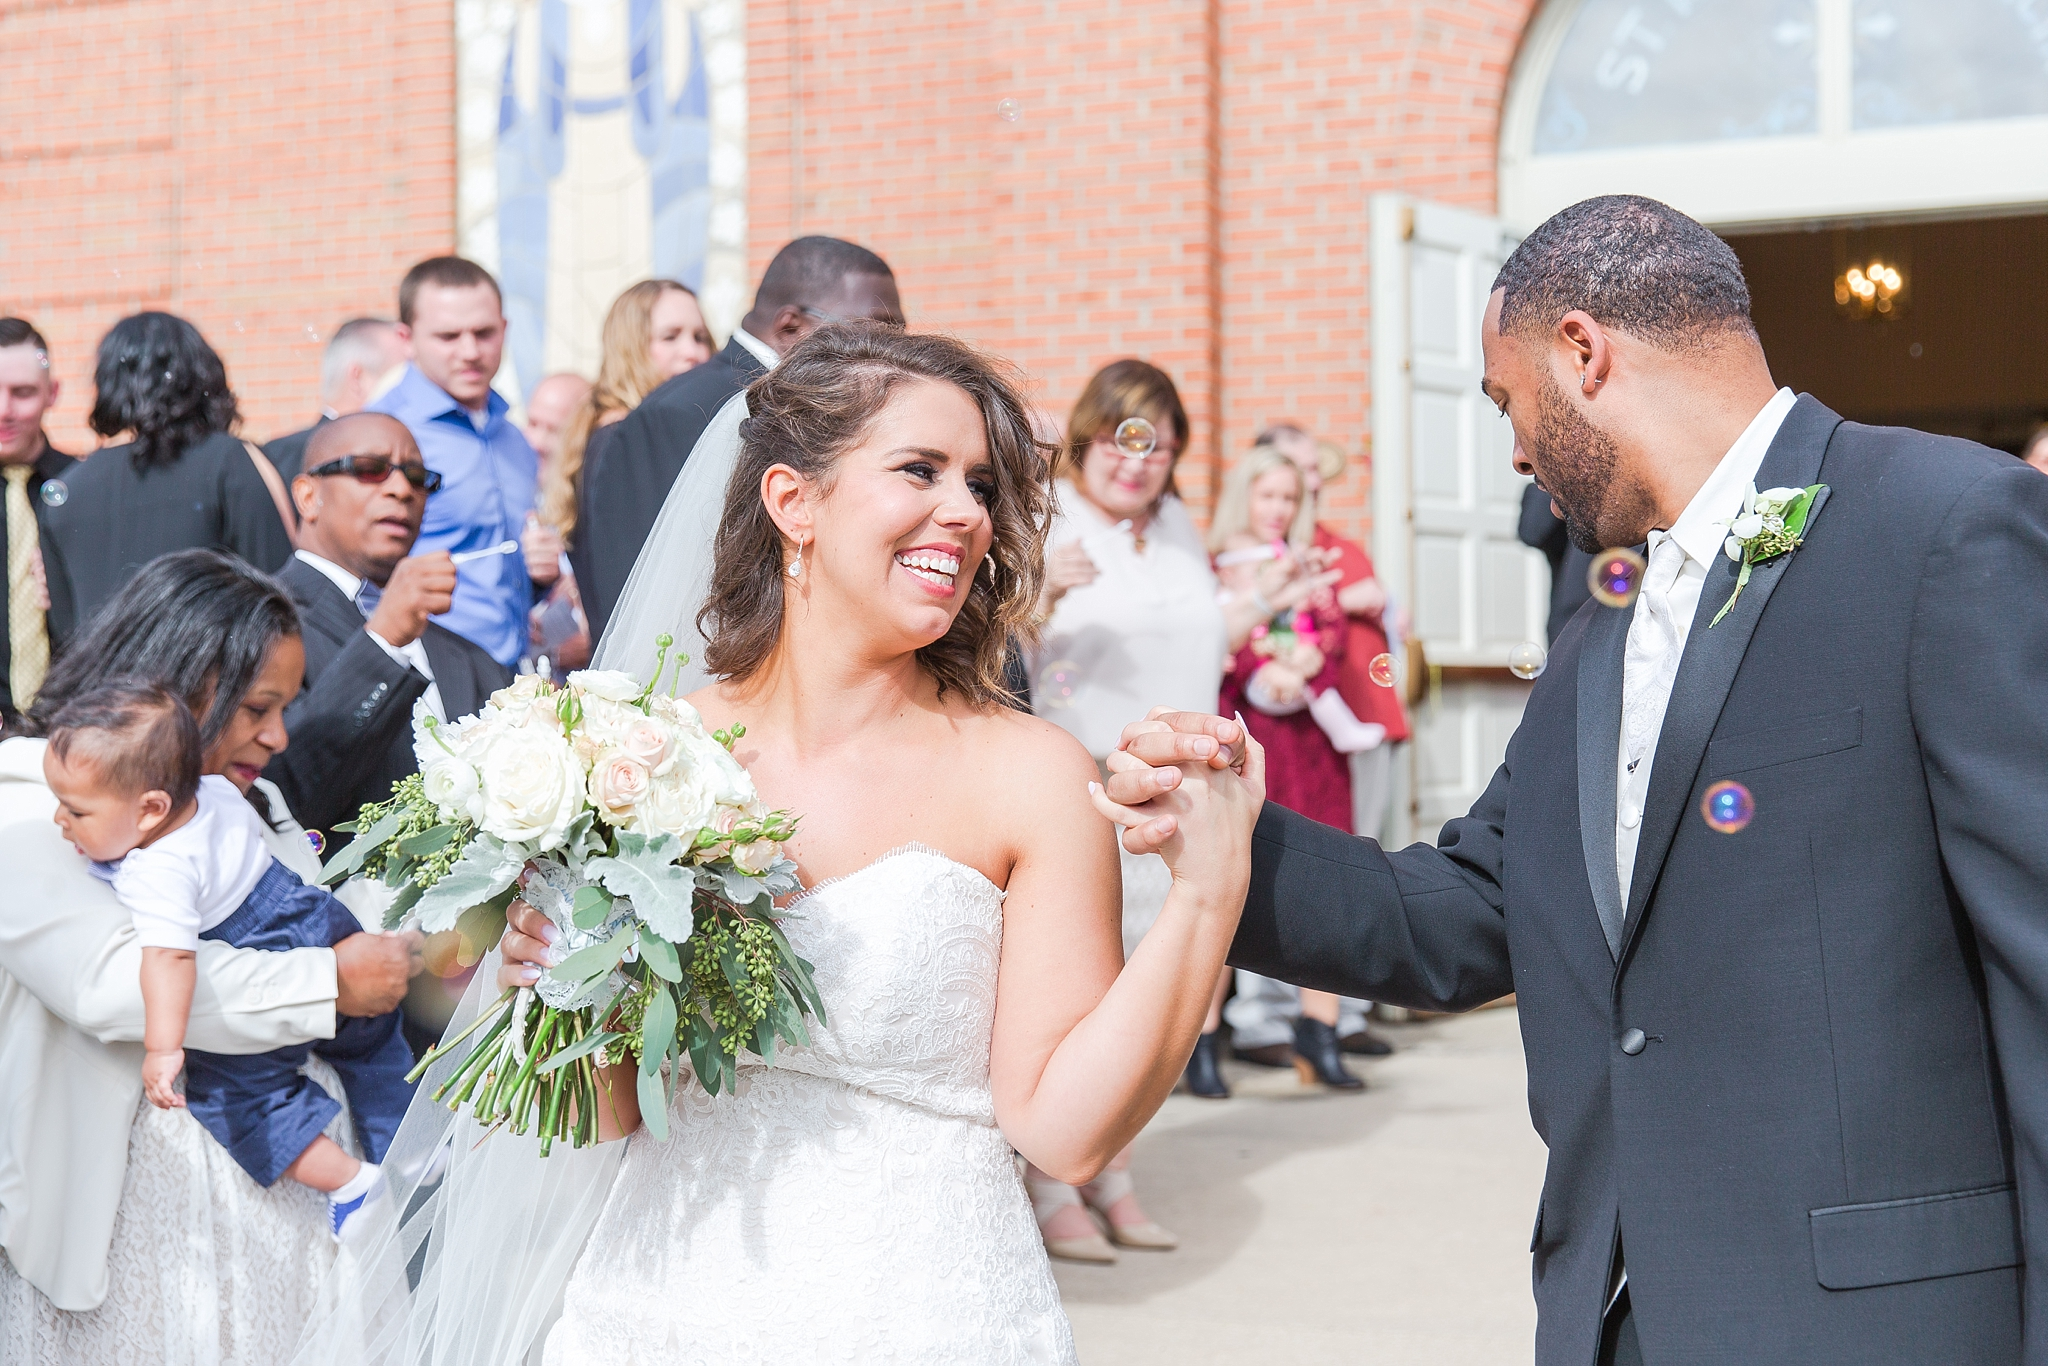 romantic-artful-candid-wedding-photos-in-detroit-lansing-ann-arbor-northern-michigan-and-chicago-by-courtney-carolyn-photography_0042.jpg